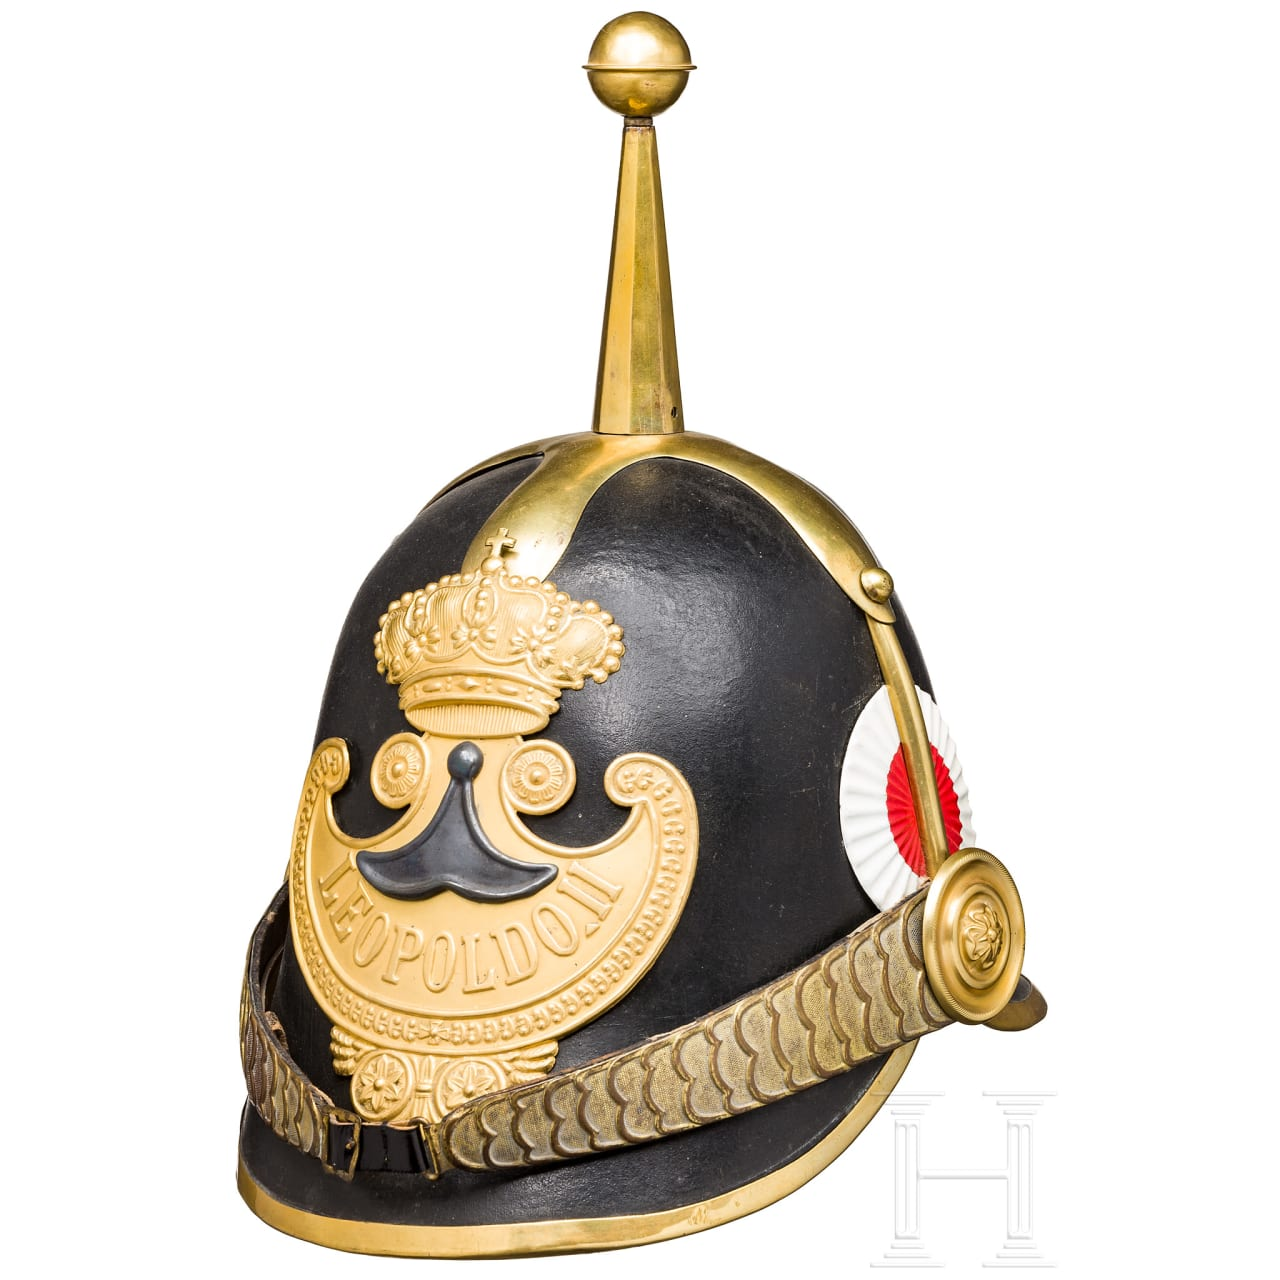 "Helmet of the ""Guardia Civica"" from the reign of Leopold II, Grand Duke of Tuscany (1824-1859)"